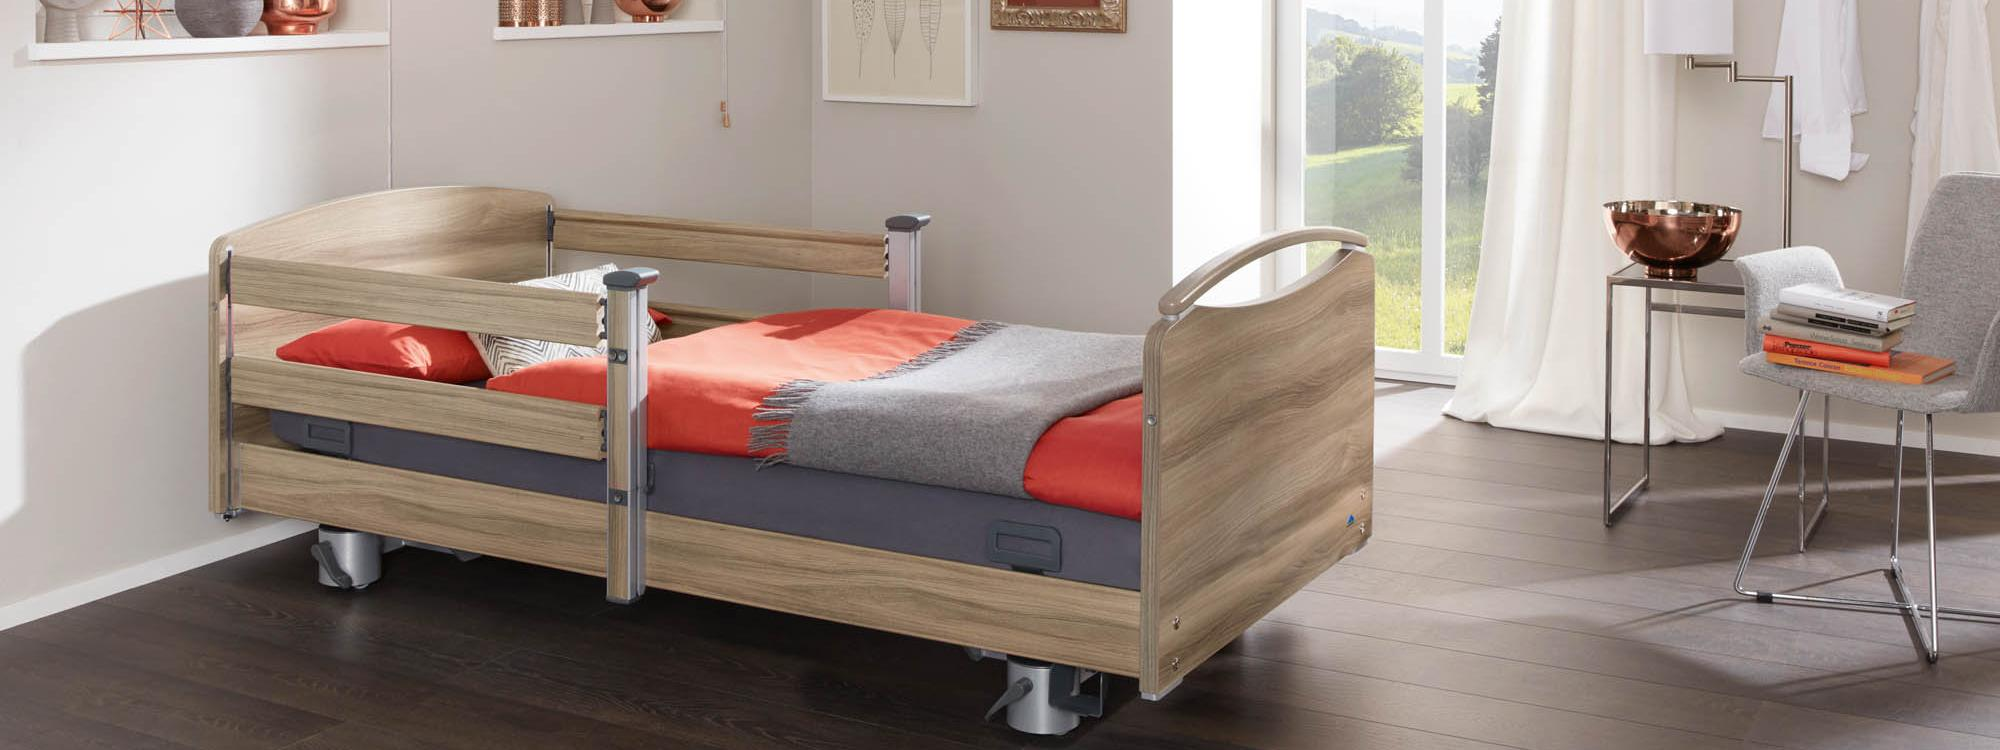 Combinable split safety side on the Elvido vervo low-height bed